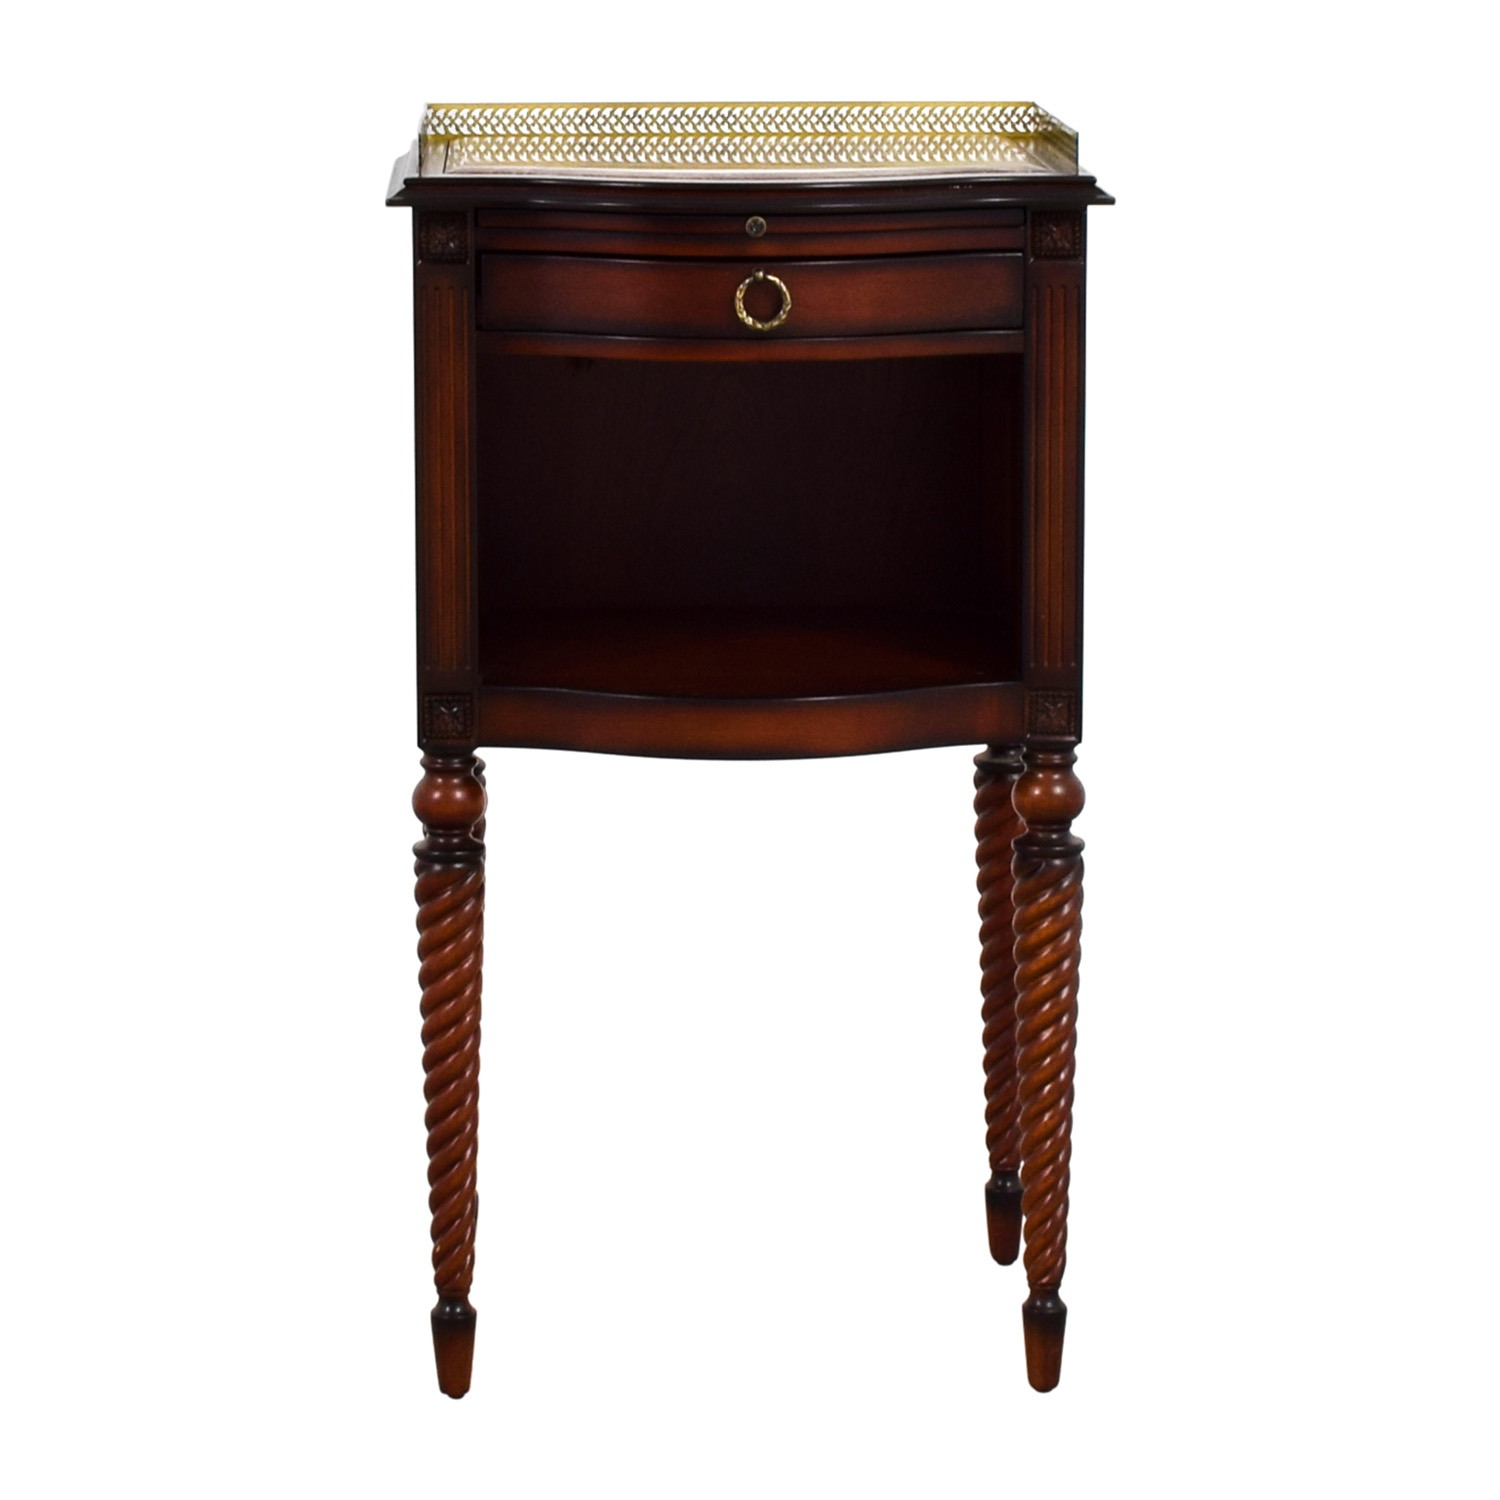 off bombay marble top with gold trim wood accent table drawer used old kitchen tables beach bedroom decor real coffee black rustic end metal hairpin legs wall unit furniture